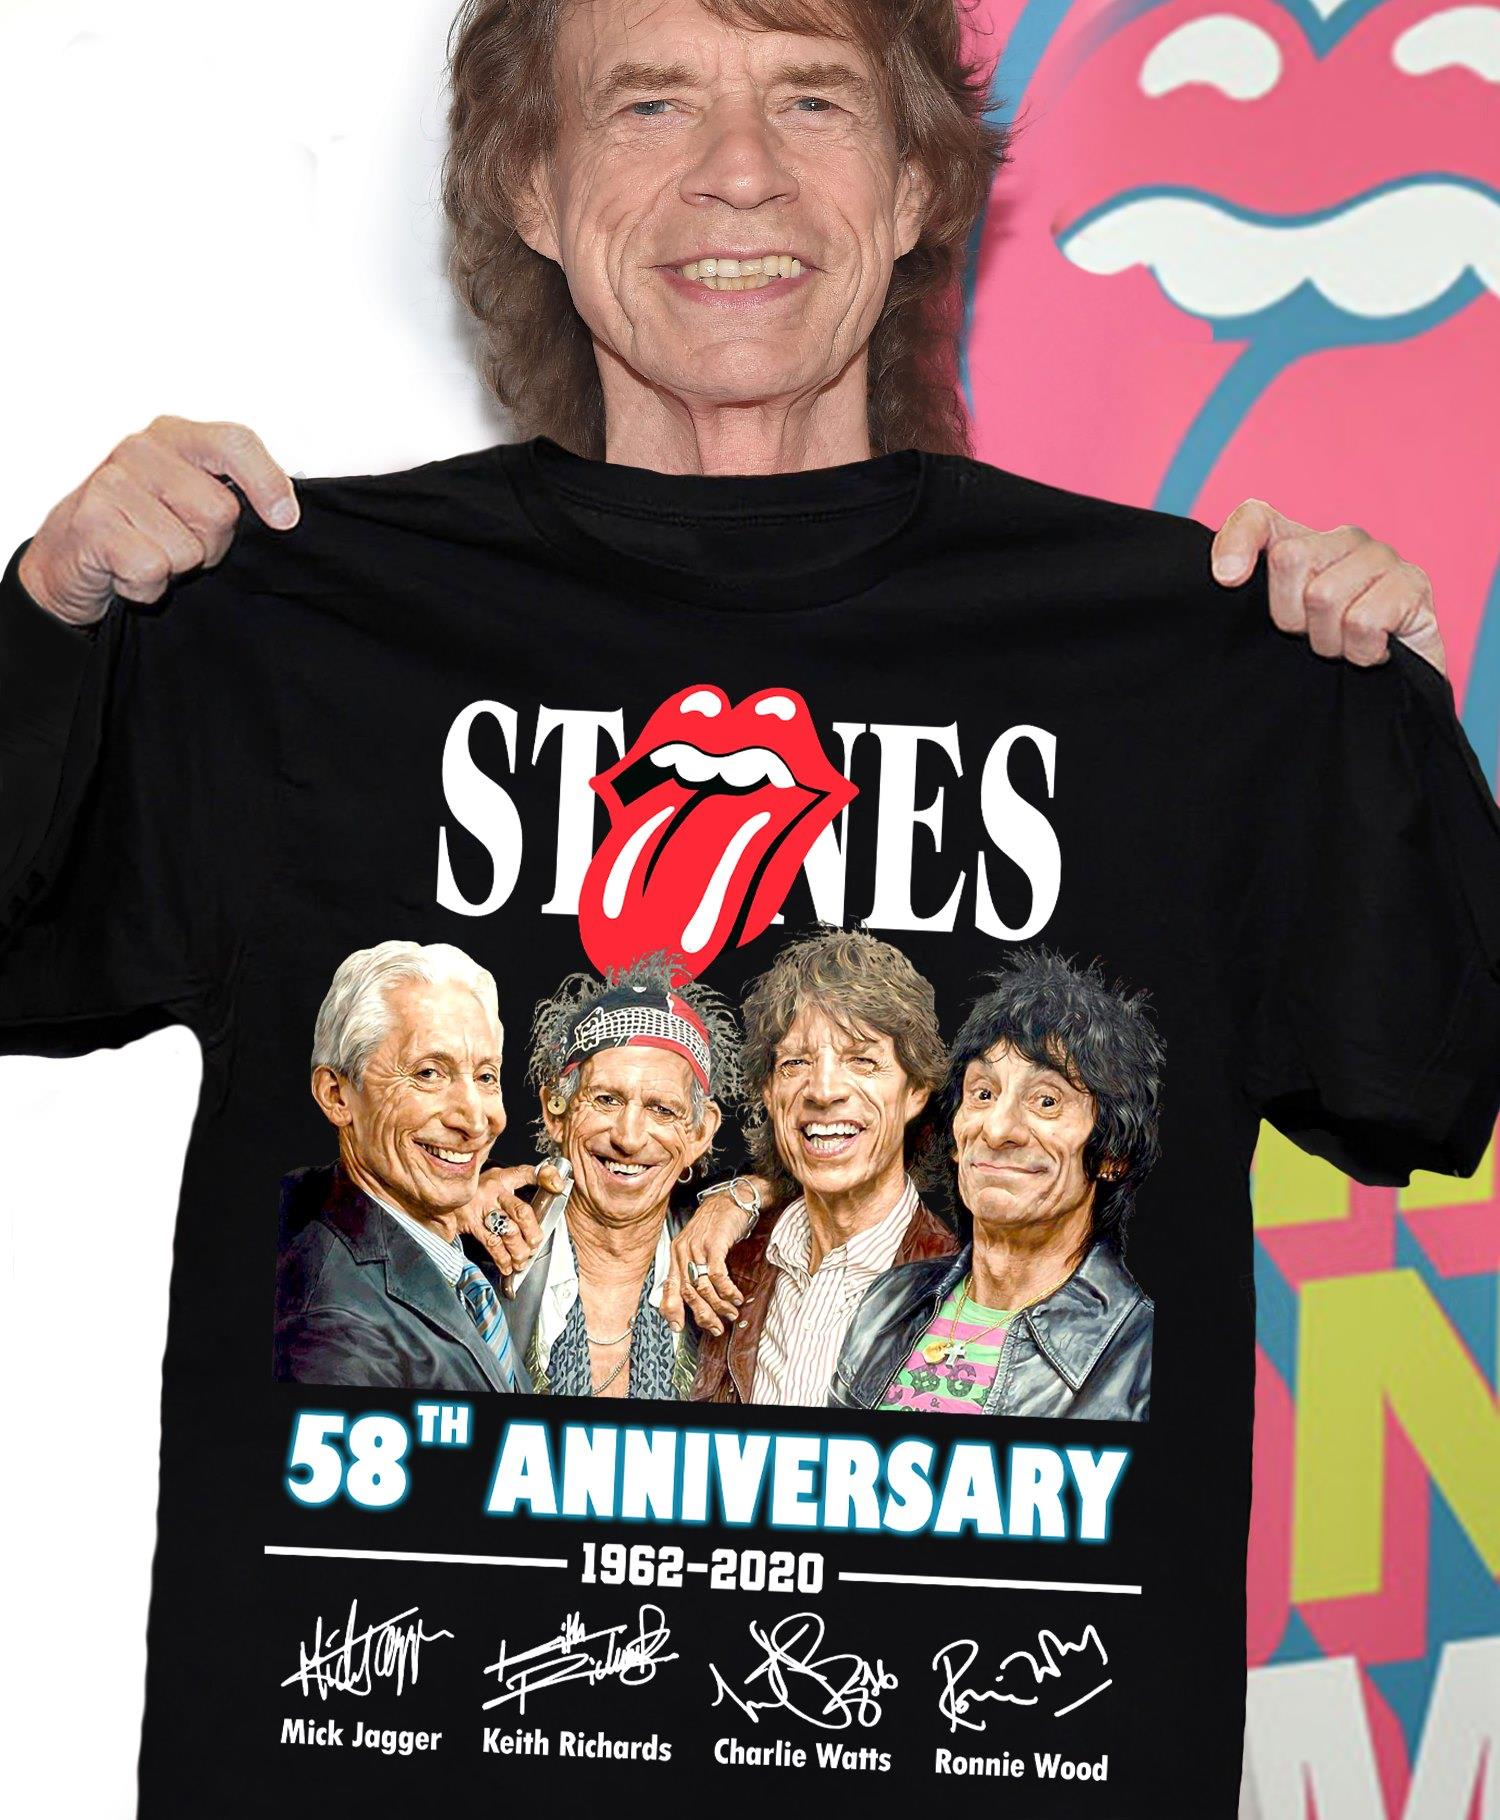 Stones 58th Anniversary 1962 - 2020 Members Signature Shirt